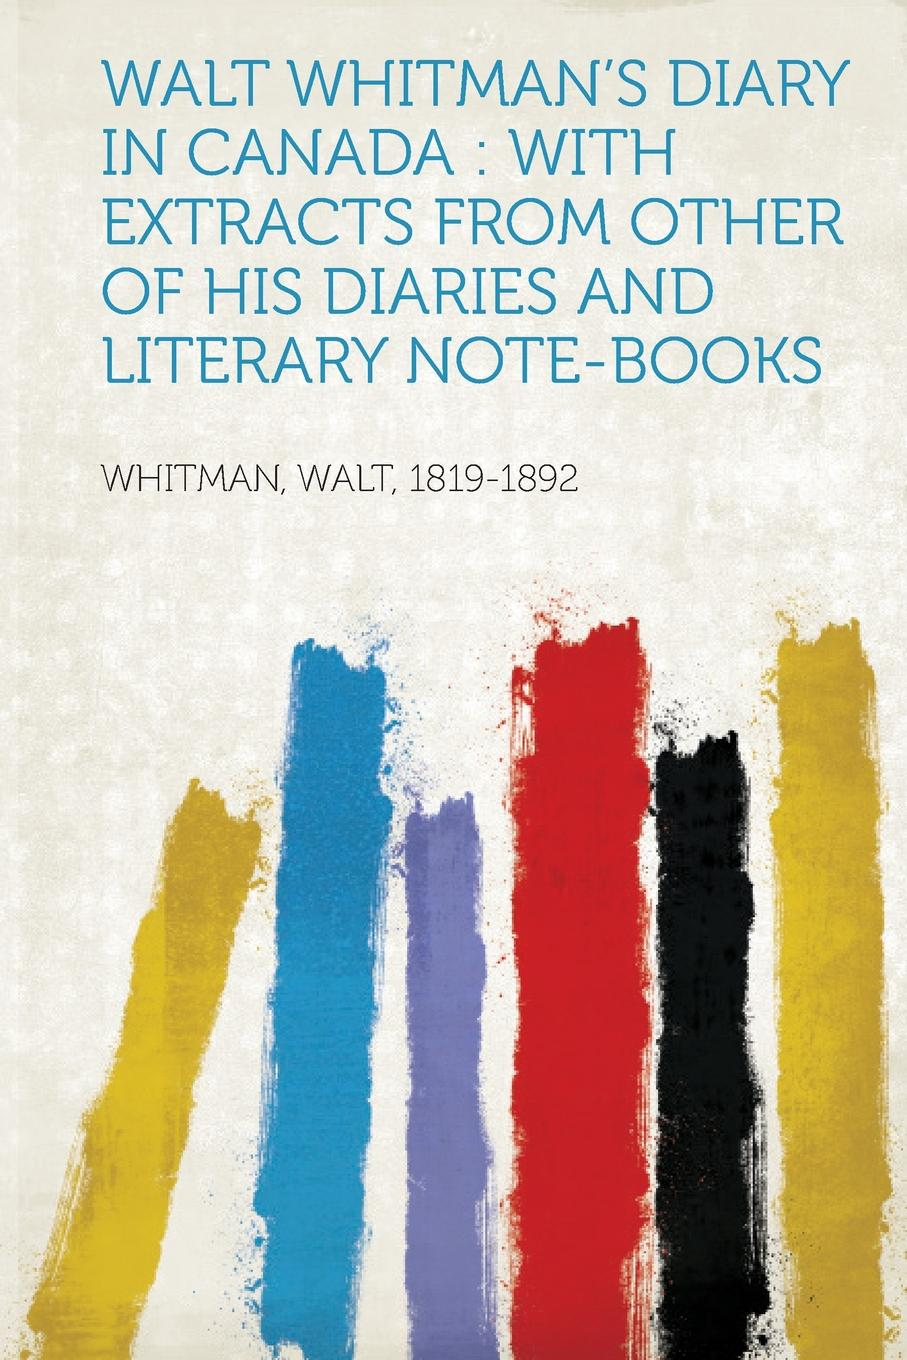 Walt Whitman Walt Whitman.s Diary in Canada. With Extracts from Other of His Diaries and Literary Note-Books judith grace good bye my fancy with walt whitman in his last days